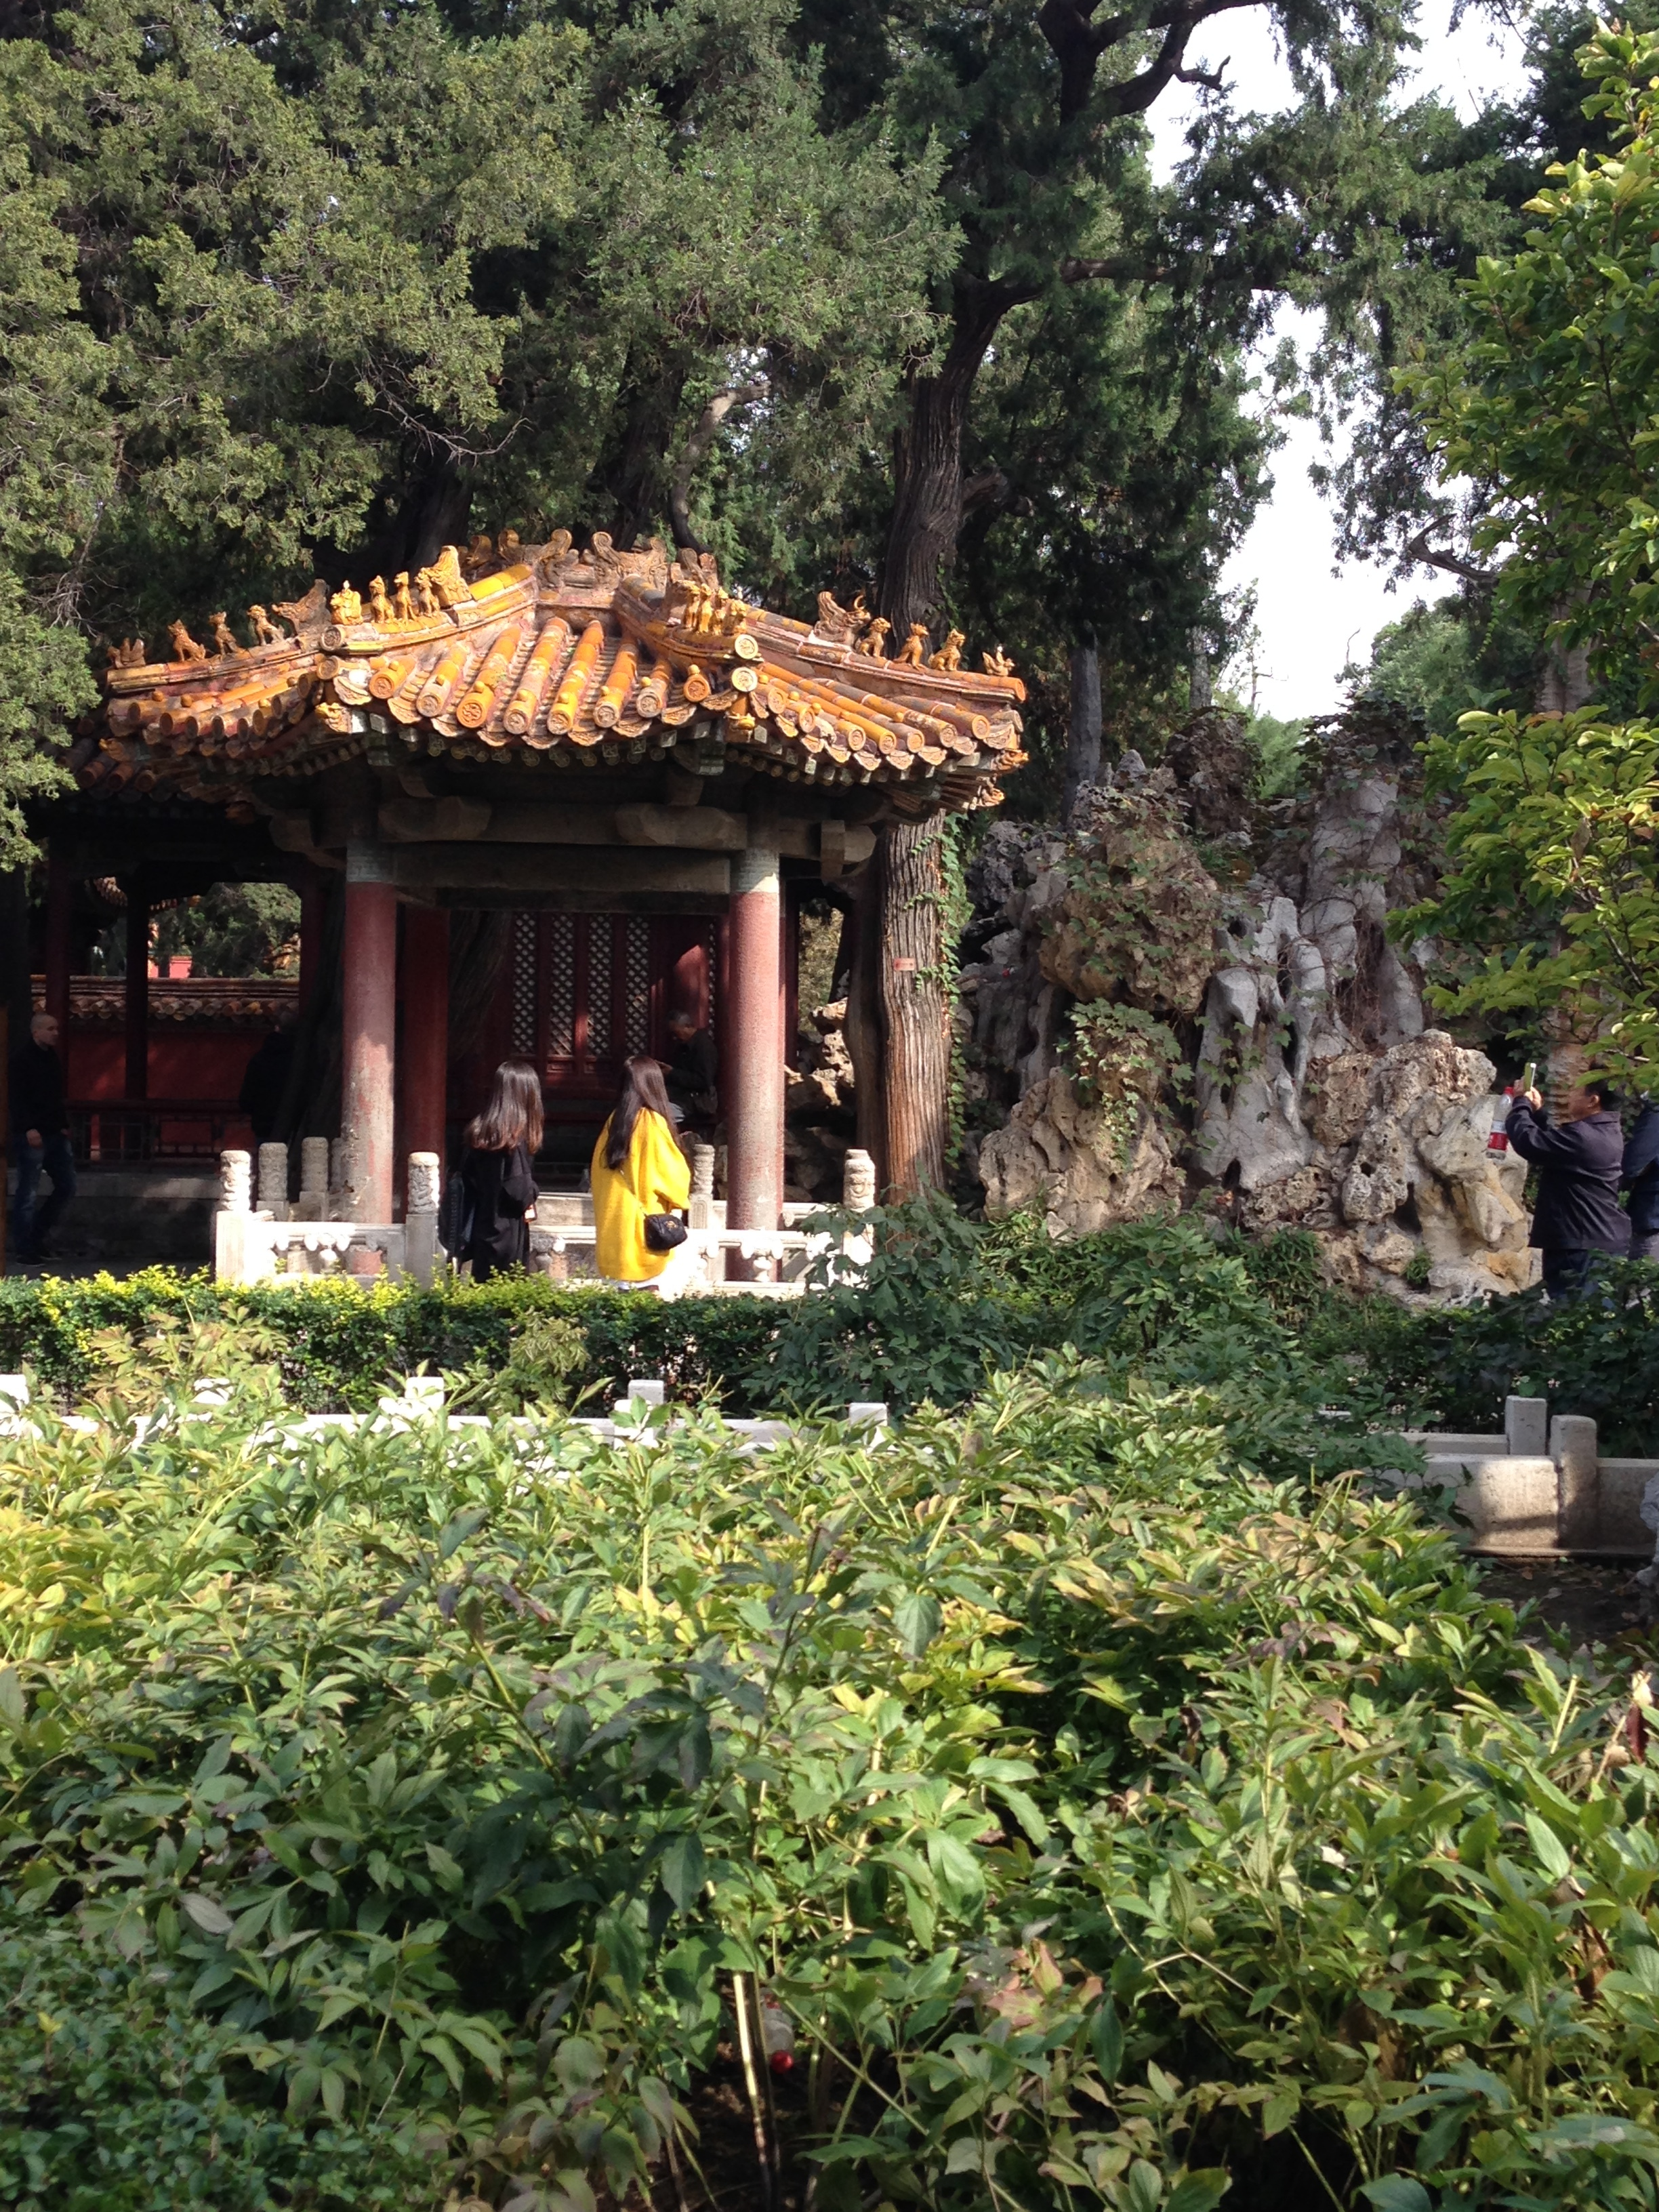 The gardens of the Forbidden City were lovely (and slightly less crowded).